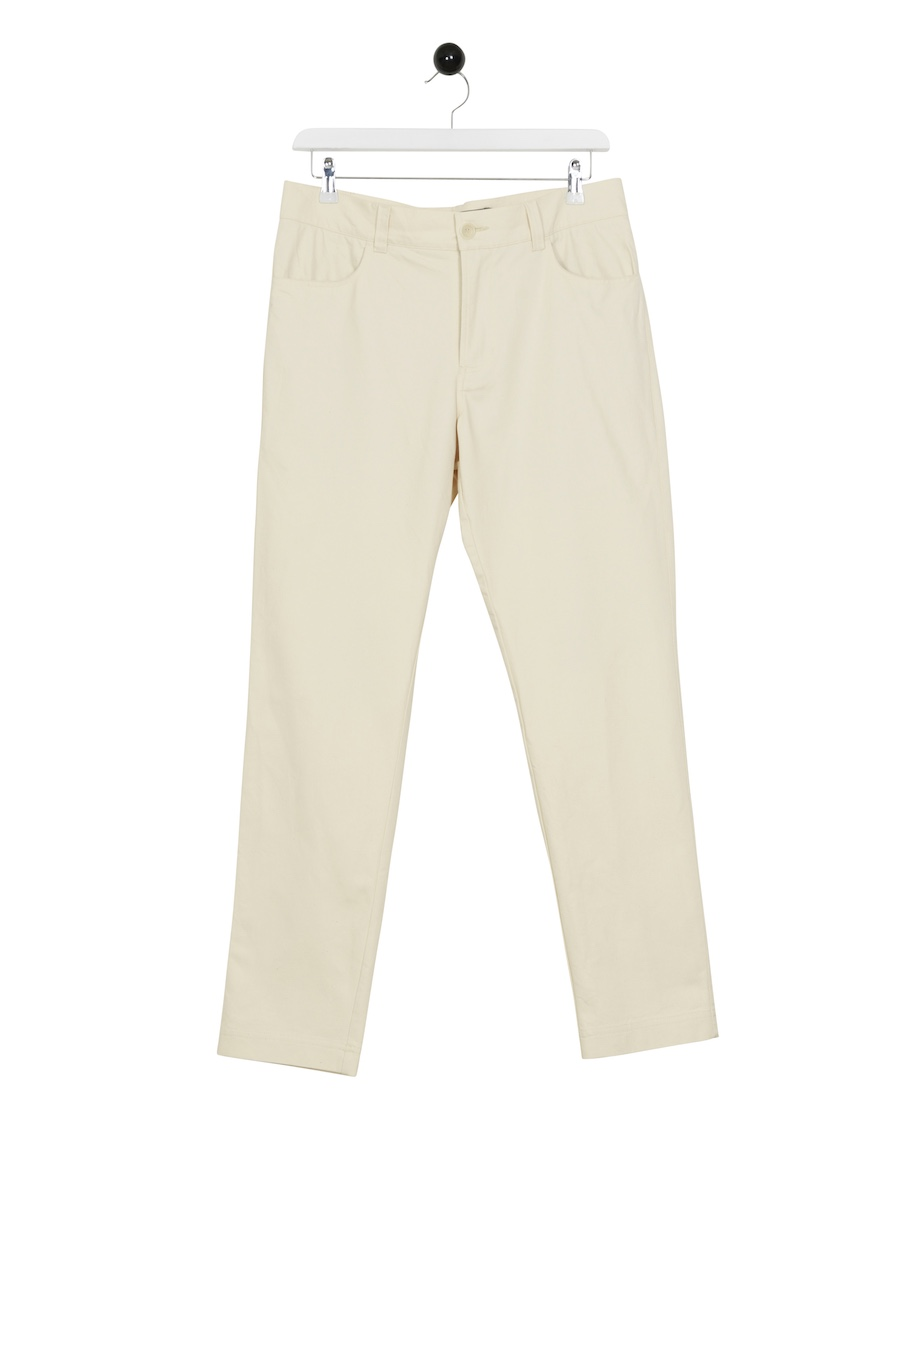 Lipizzaner Trousers